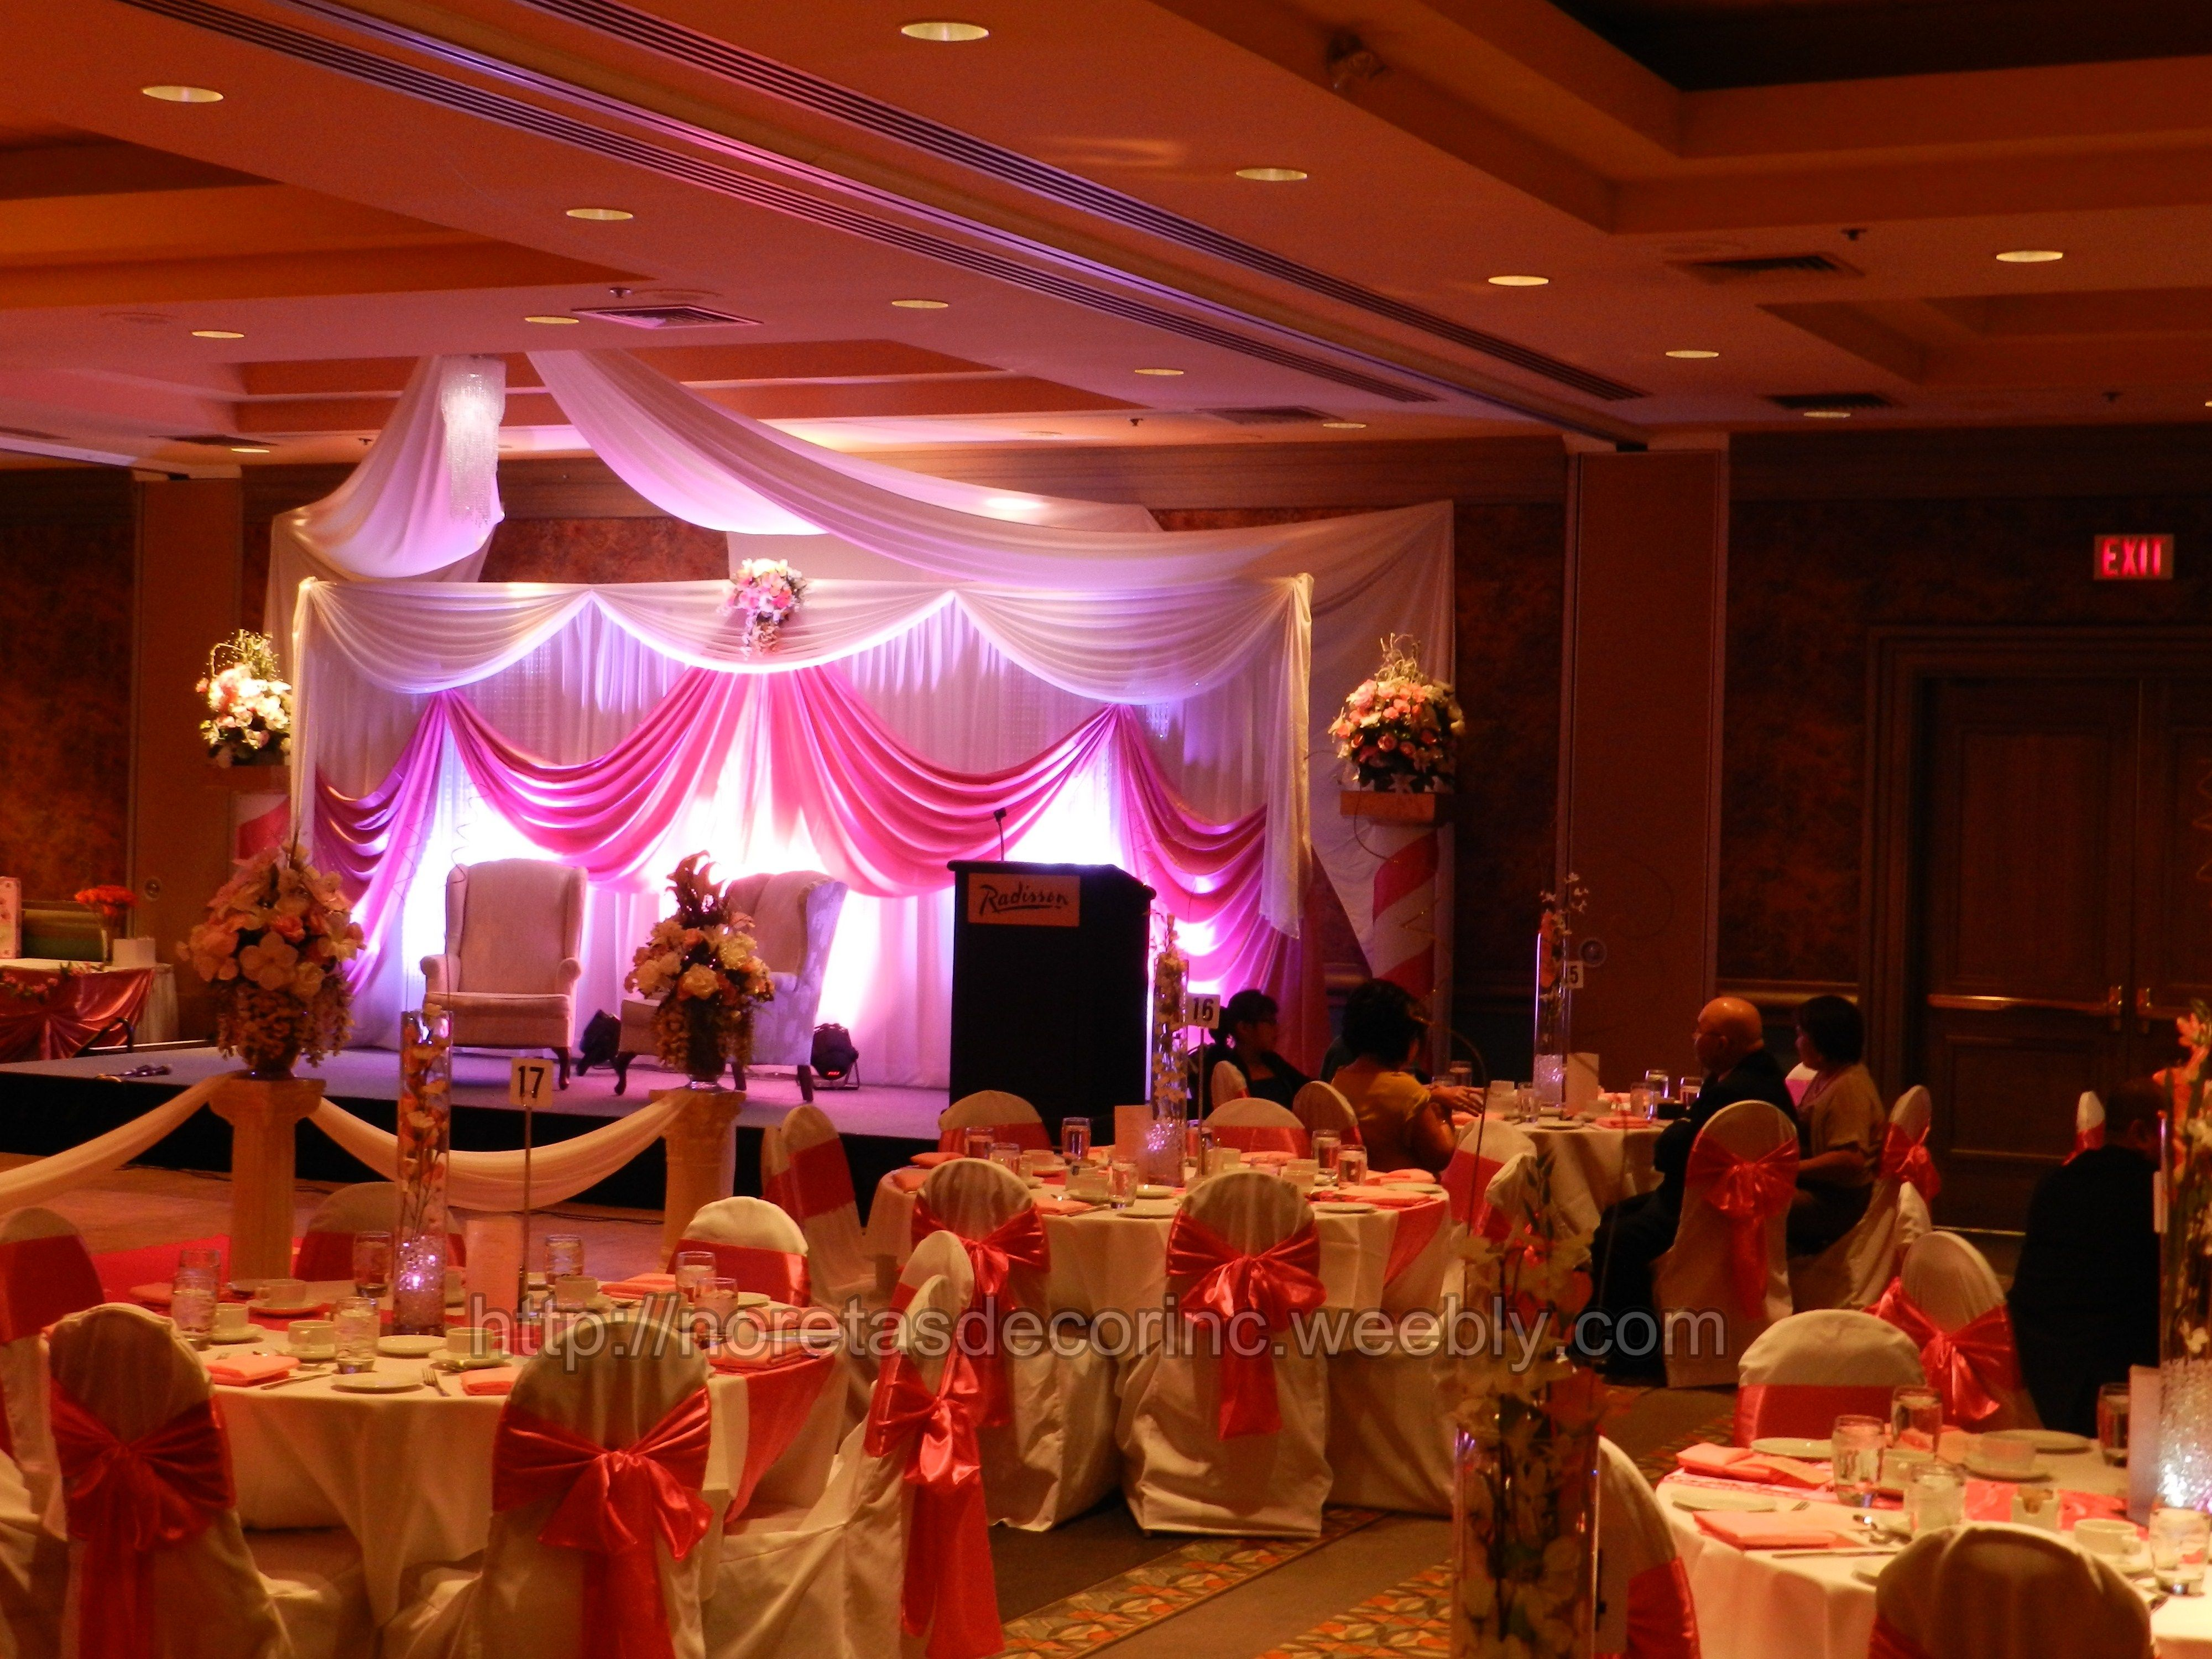 Wedding decoration, banquet hall decoration http://noretasdecorinc ... for Decoration Ideas For Party Hall  76uhy